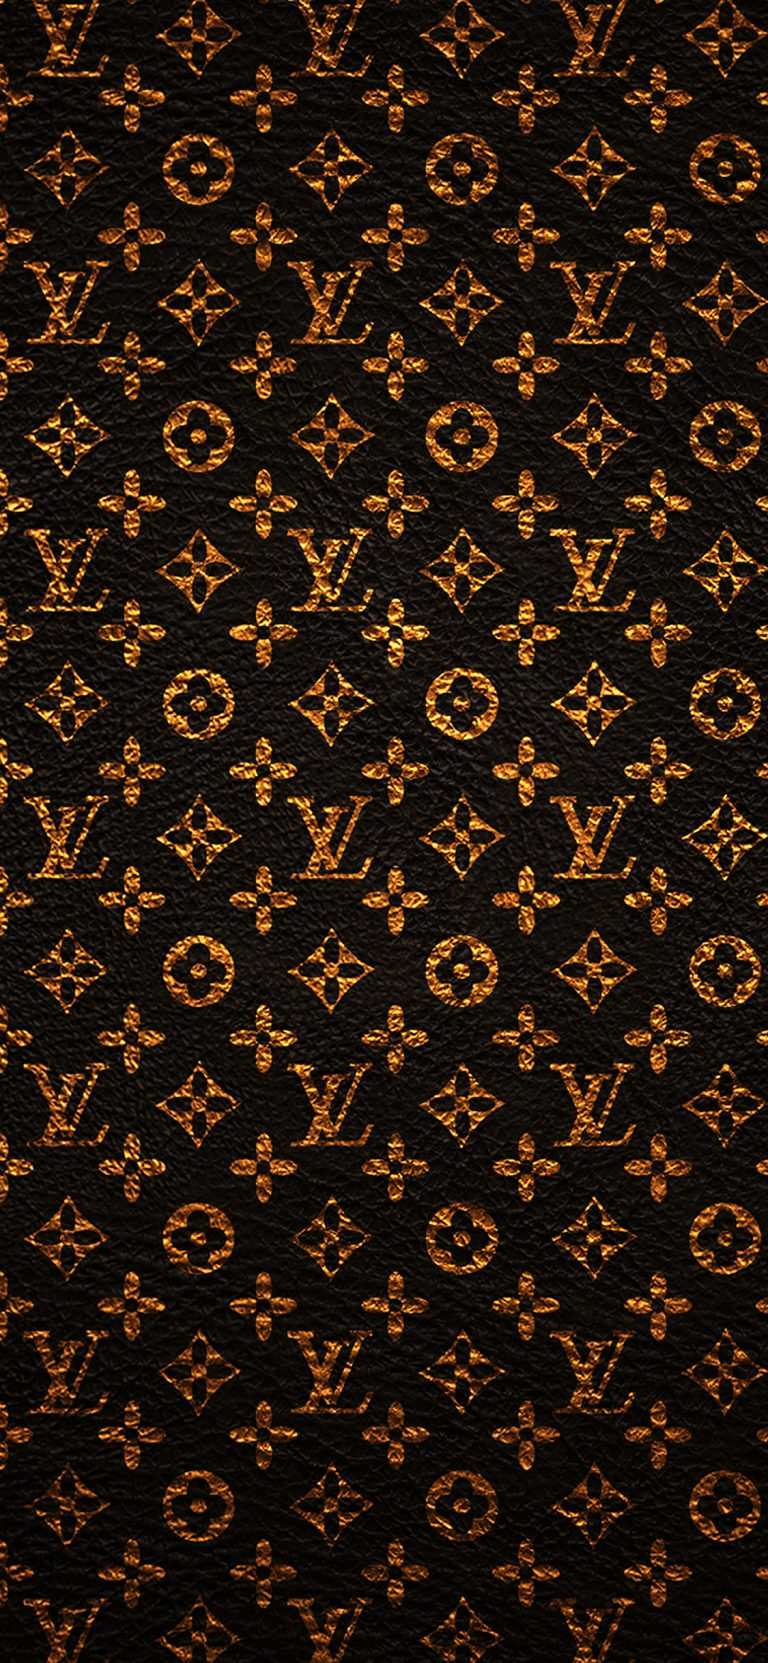 louis vuitton wallpaper 102